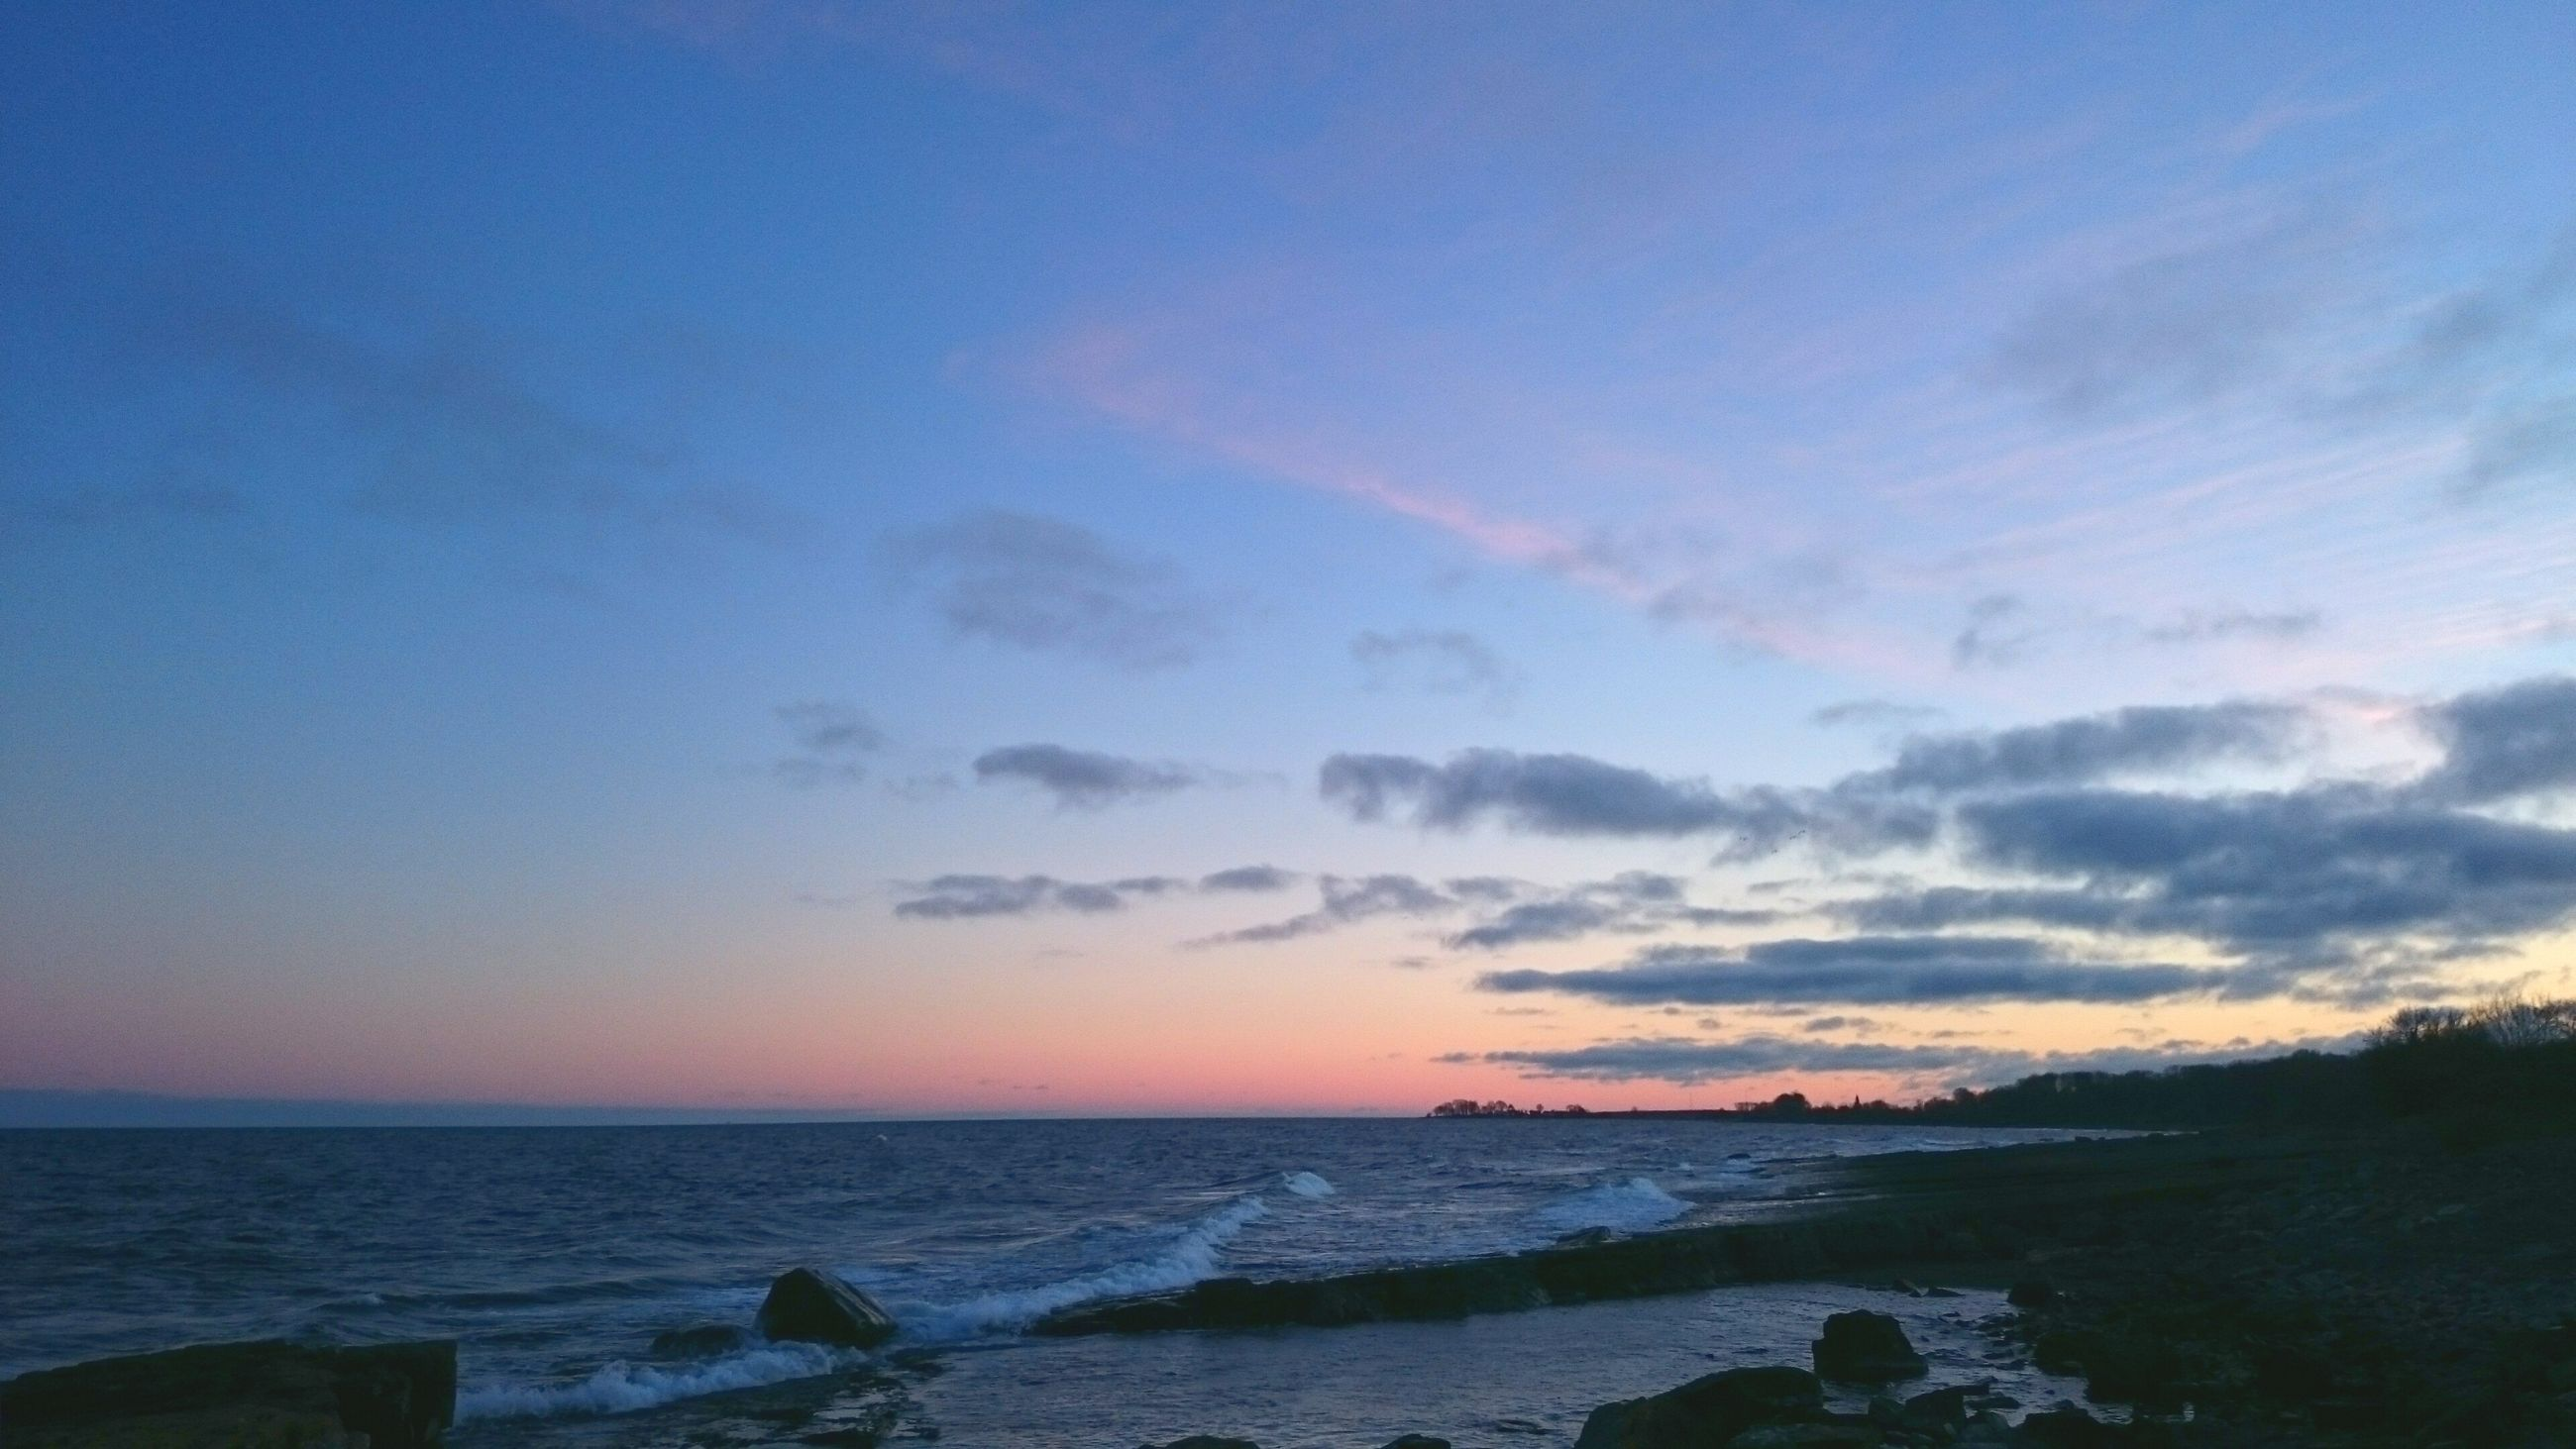 sea, horizon over water, water, scenics, tranquil scene, beauty in nature, tranquility, sky, beach, sunset, shore, nature, idyllic, wave, cloud - sky, seascape, coastline, outdoors, remote, blue